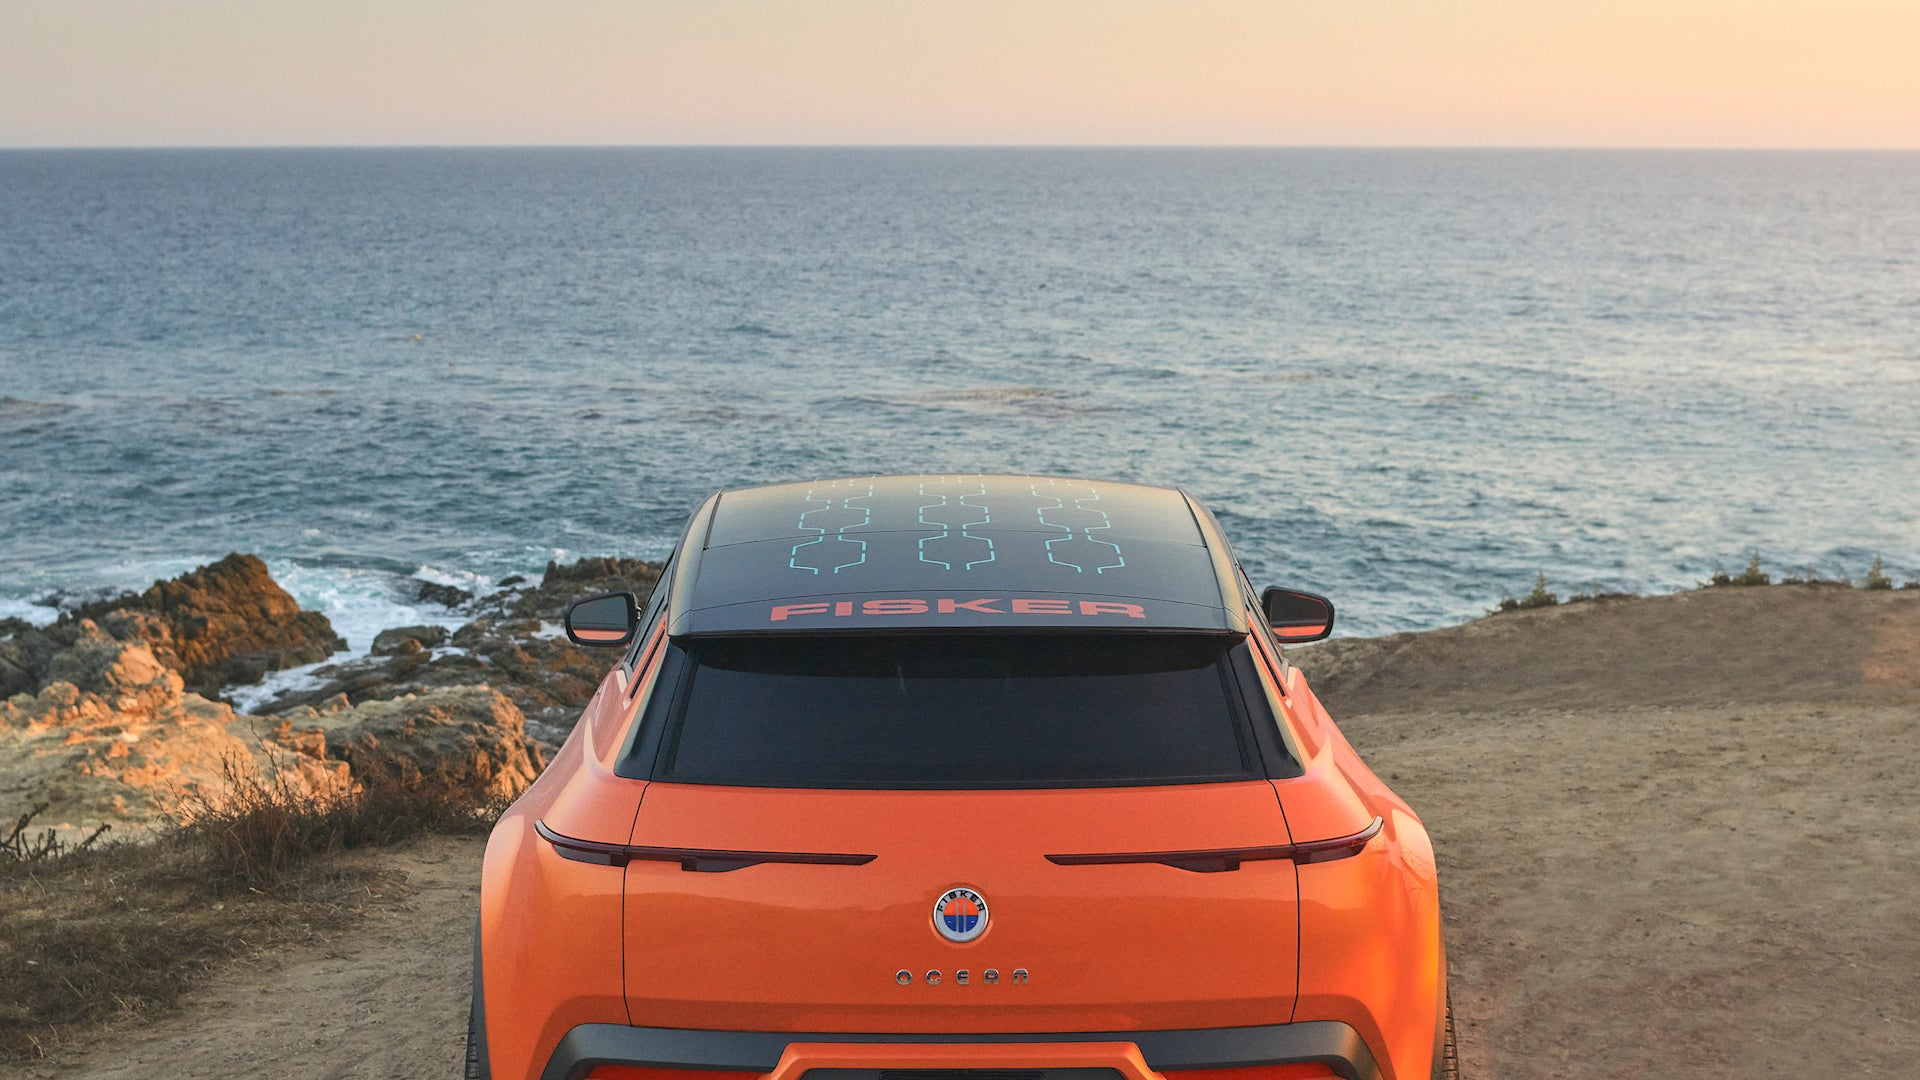 Fisker Teams Up With Magna To Build Its Electric Ocean Vehicle